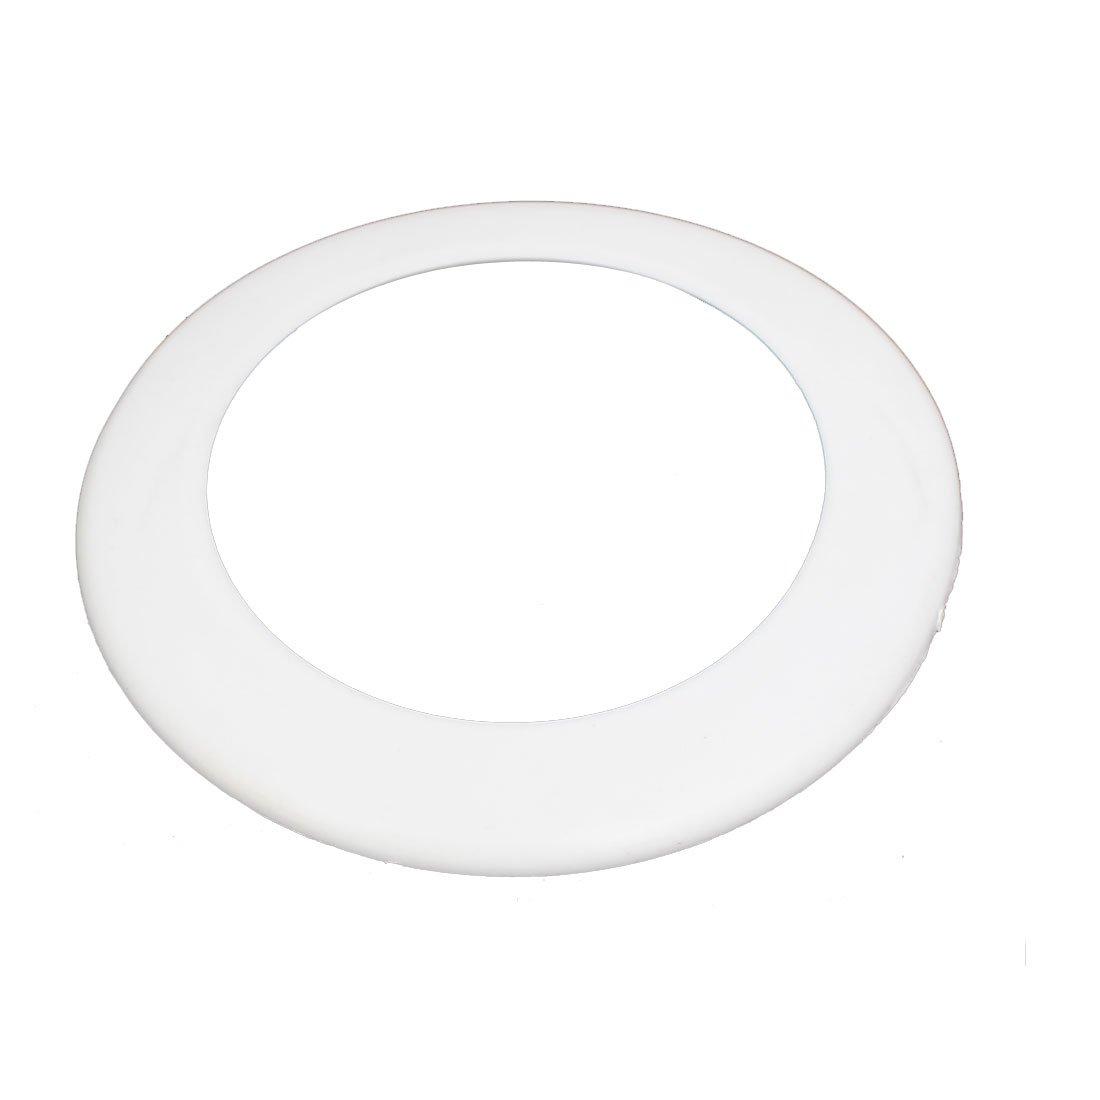 uxcell PVC Wall Flange Water Pipe Collar Cover Cap White for 75mm Drainpipe